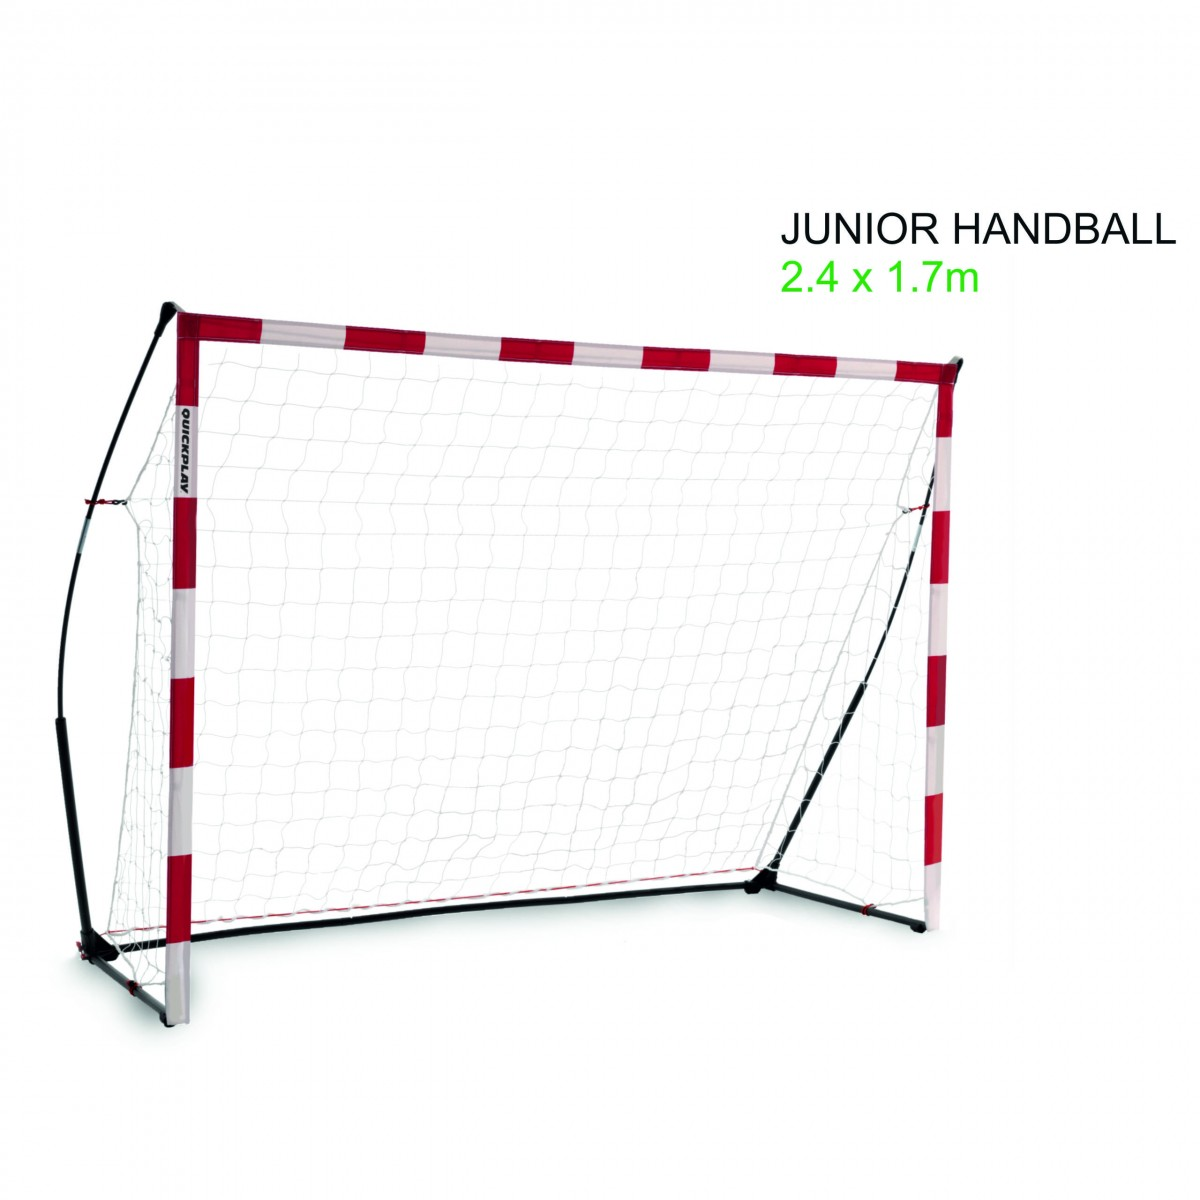 QuickplayJunior Goal